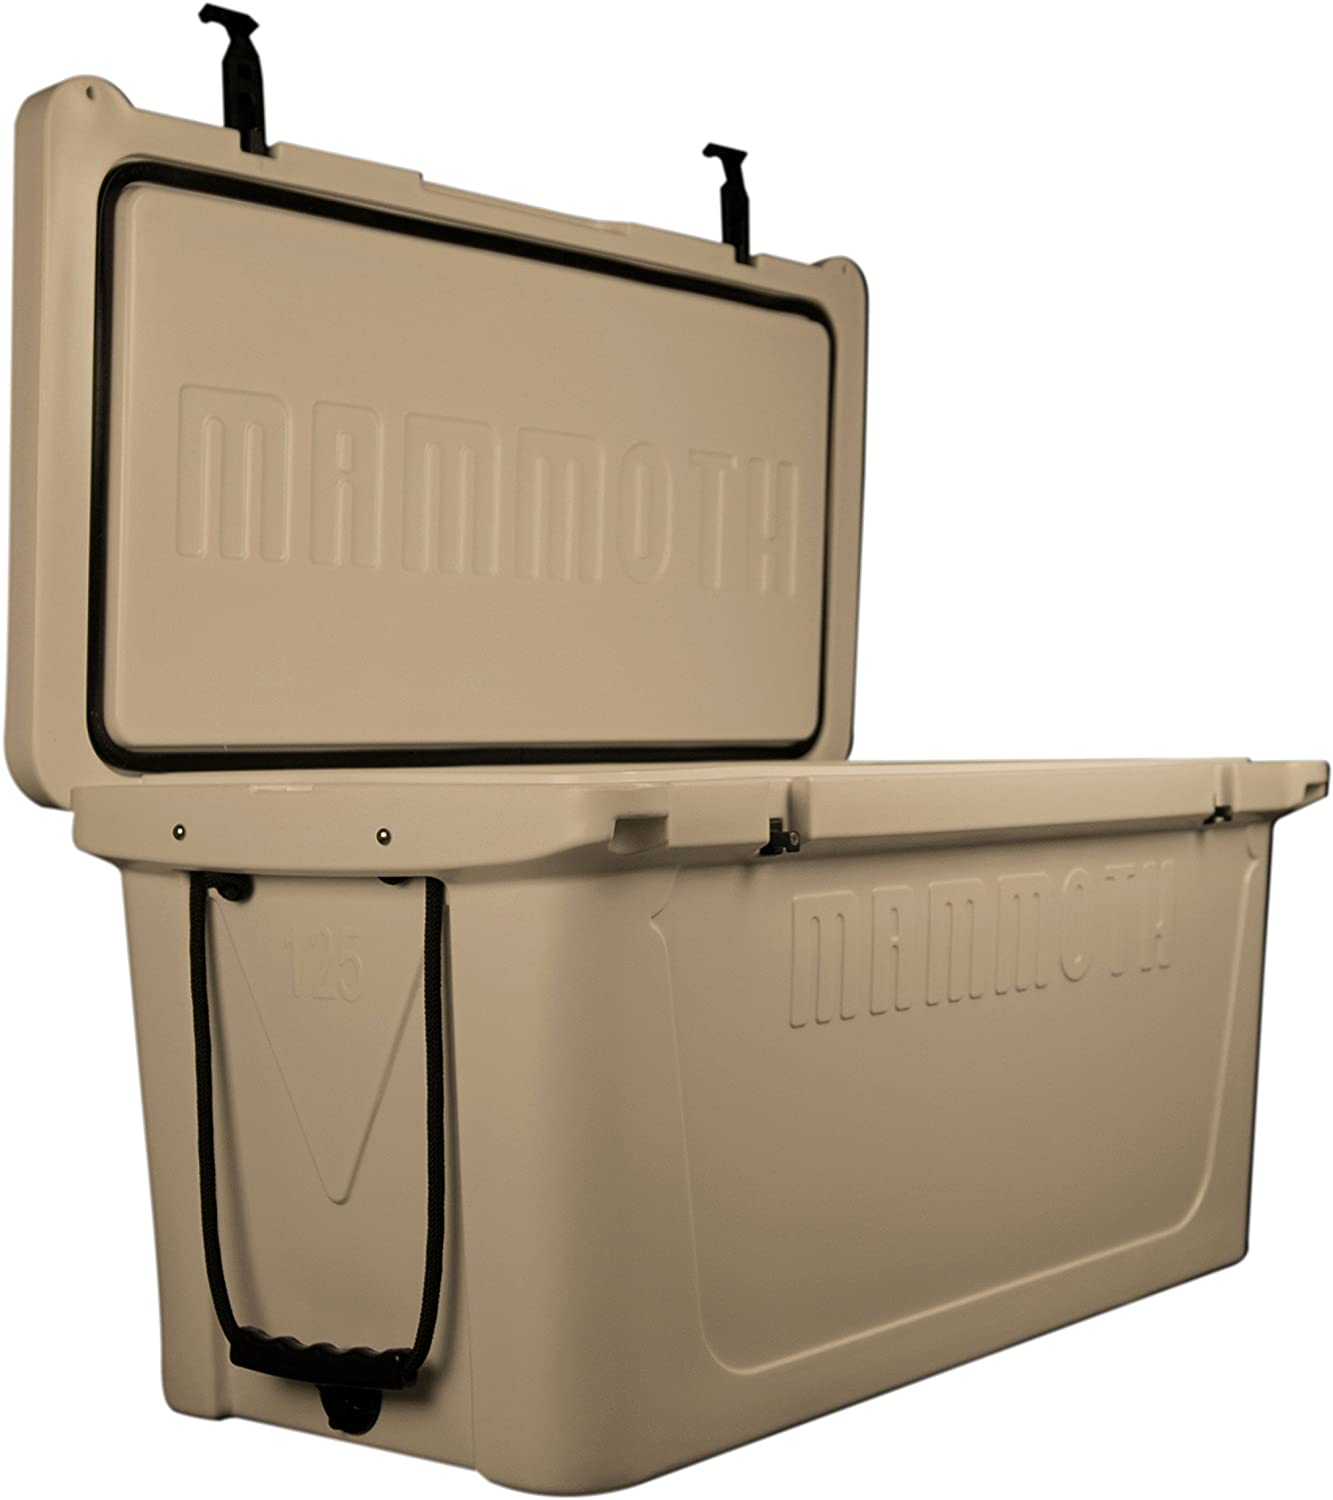 Mammoth Coolers Ranger MR125T Cooler, Tan